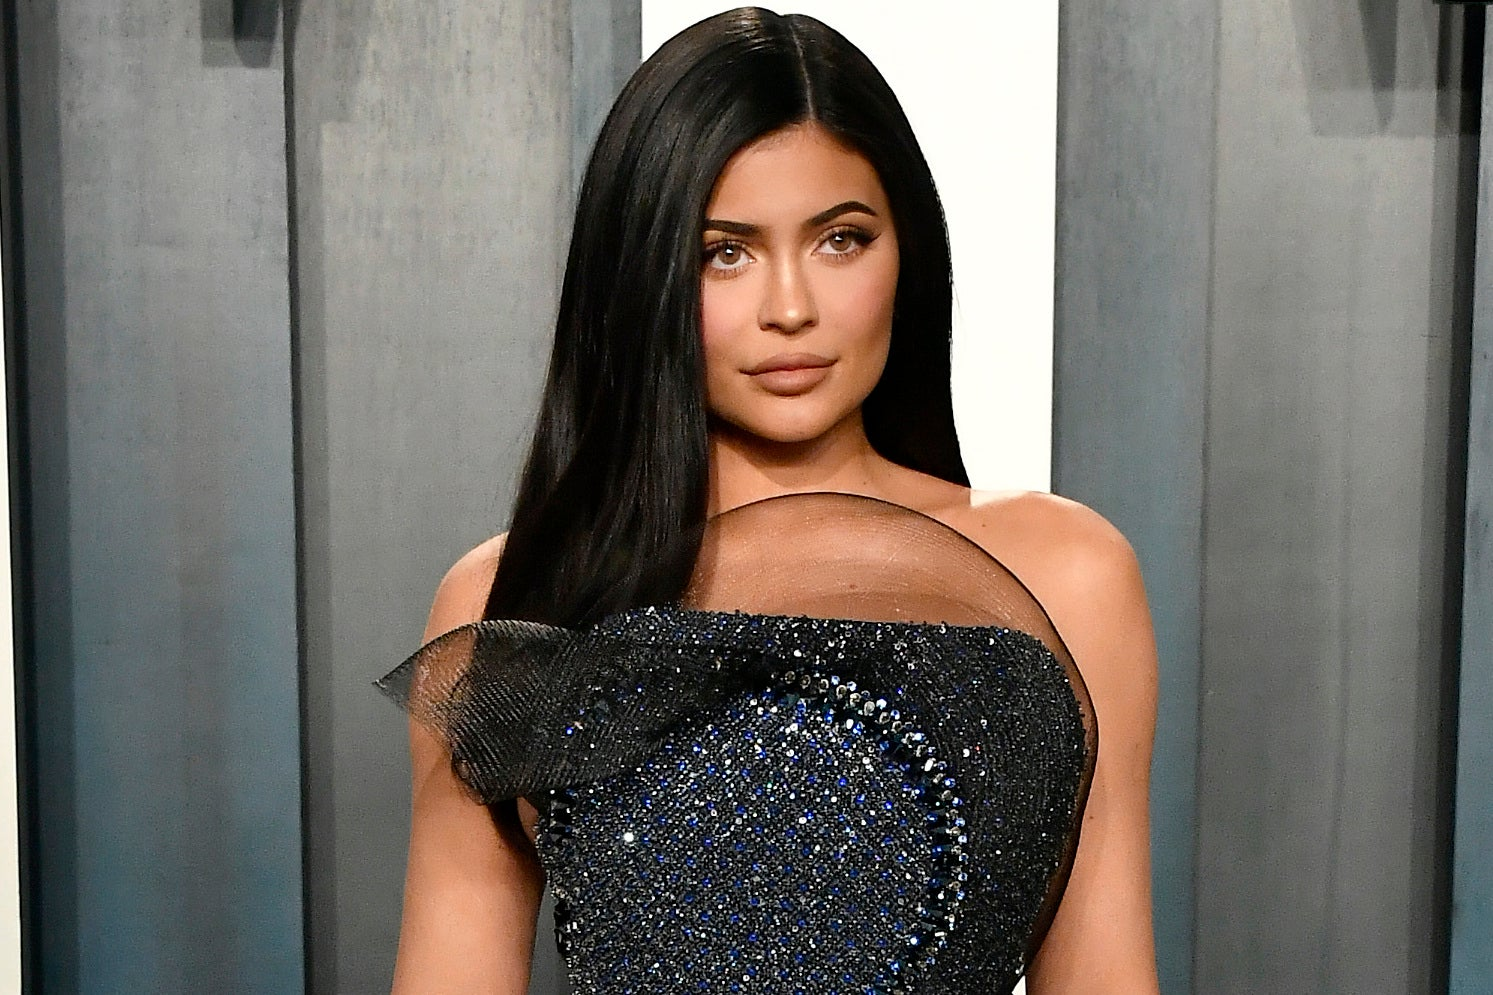 Kylie Jenner stripped of Forbes 'billionaire' status and accused of lying about net worth